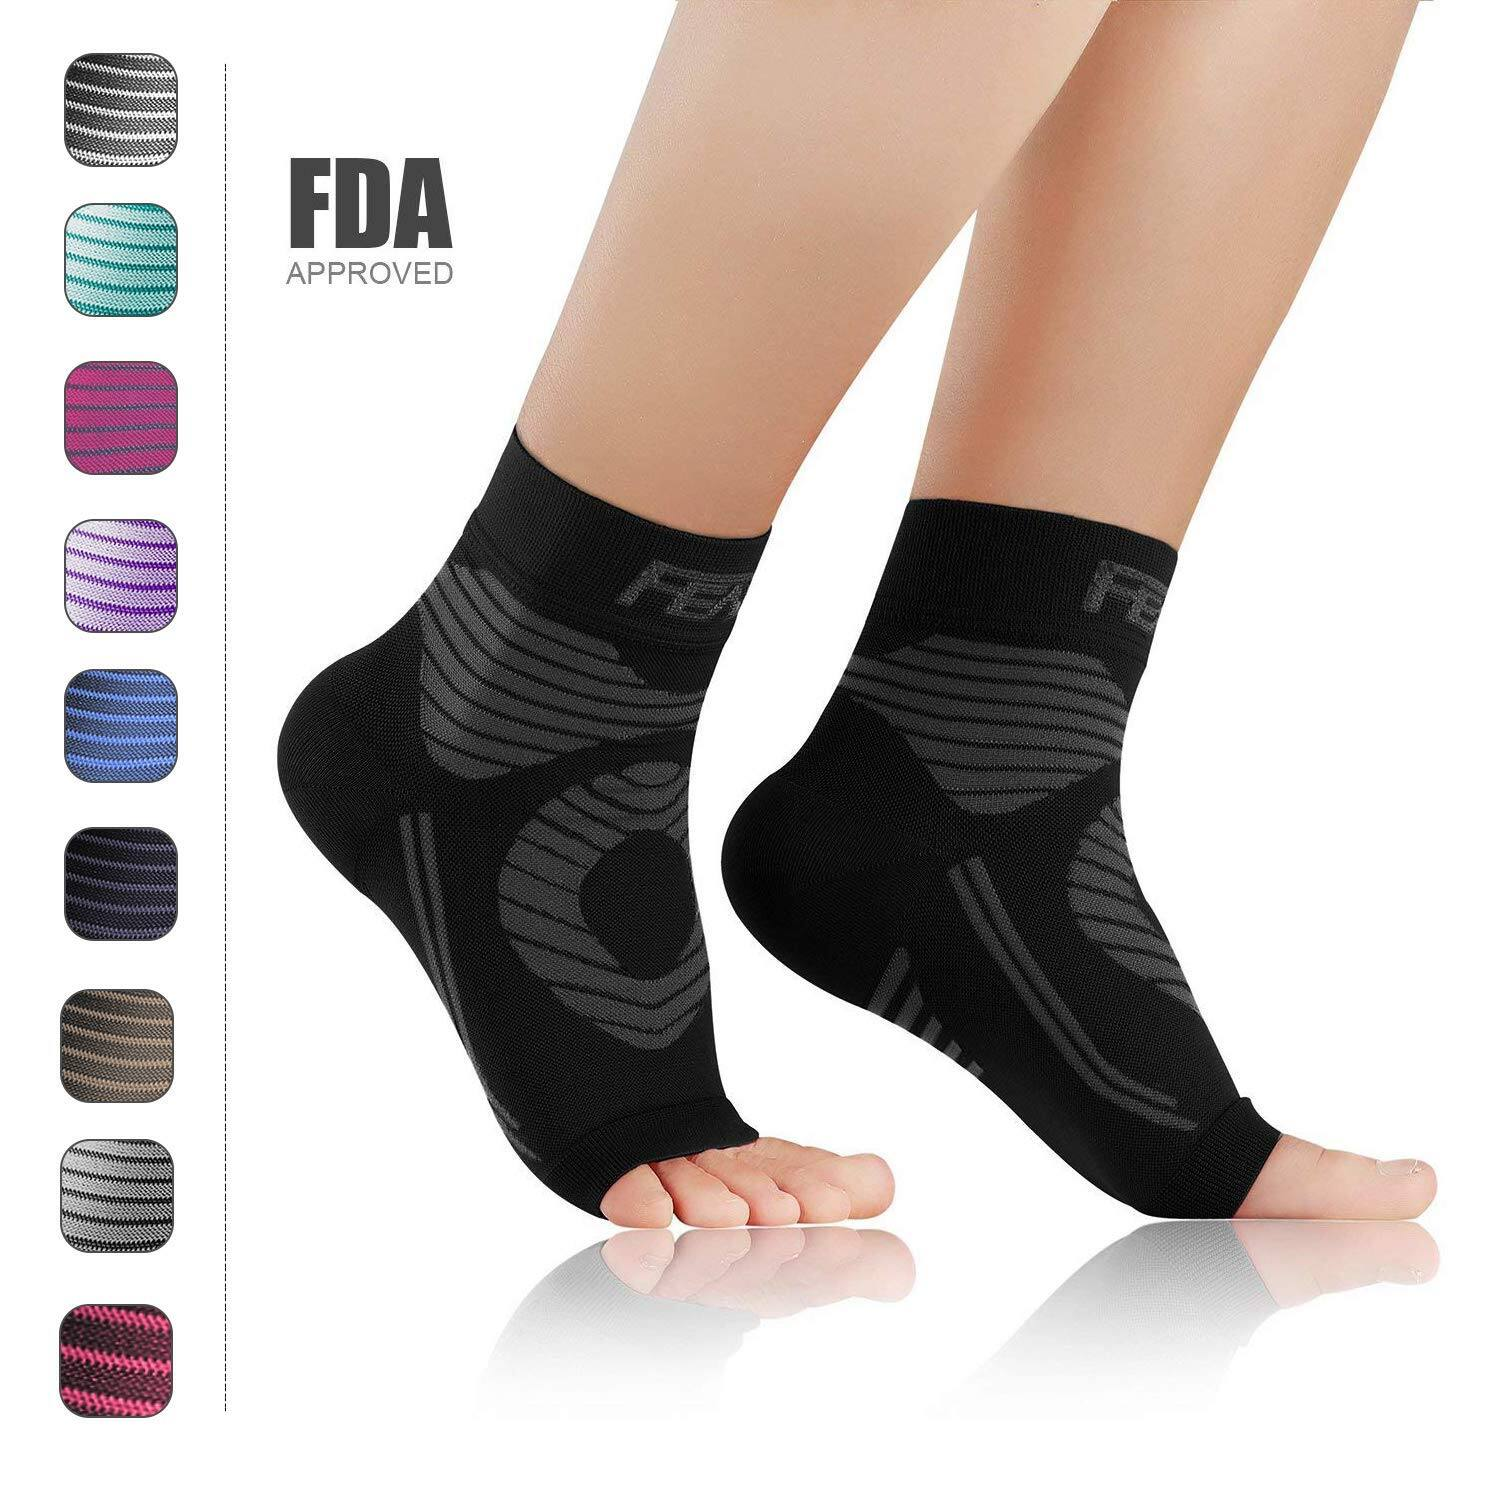 ab47d3293c Plantar Fasciitis Socks with Arch & Ankle Support $7.19, 2 Pairs for $11.39  - Slickdeals.net